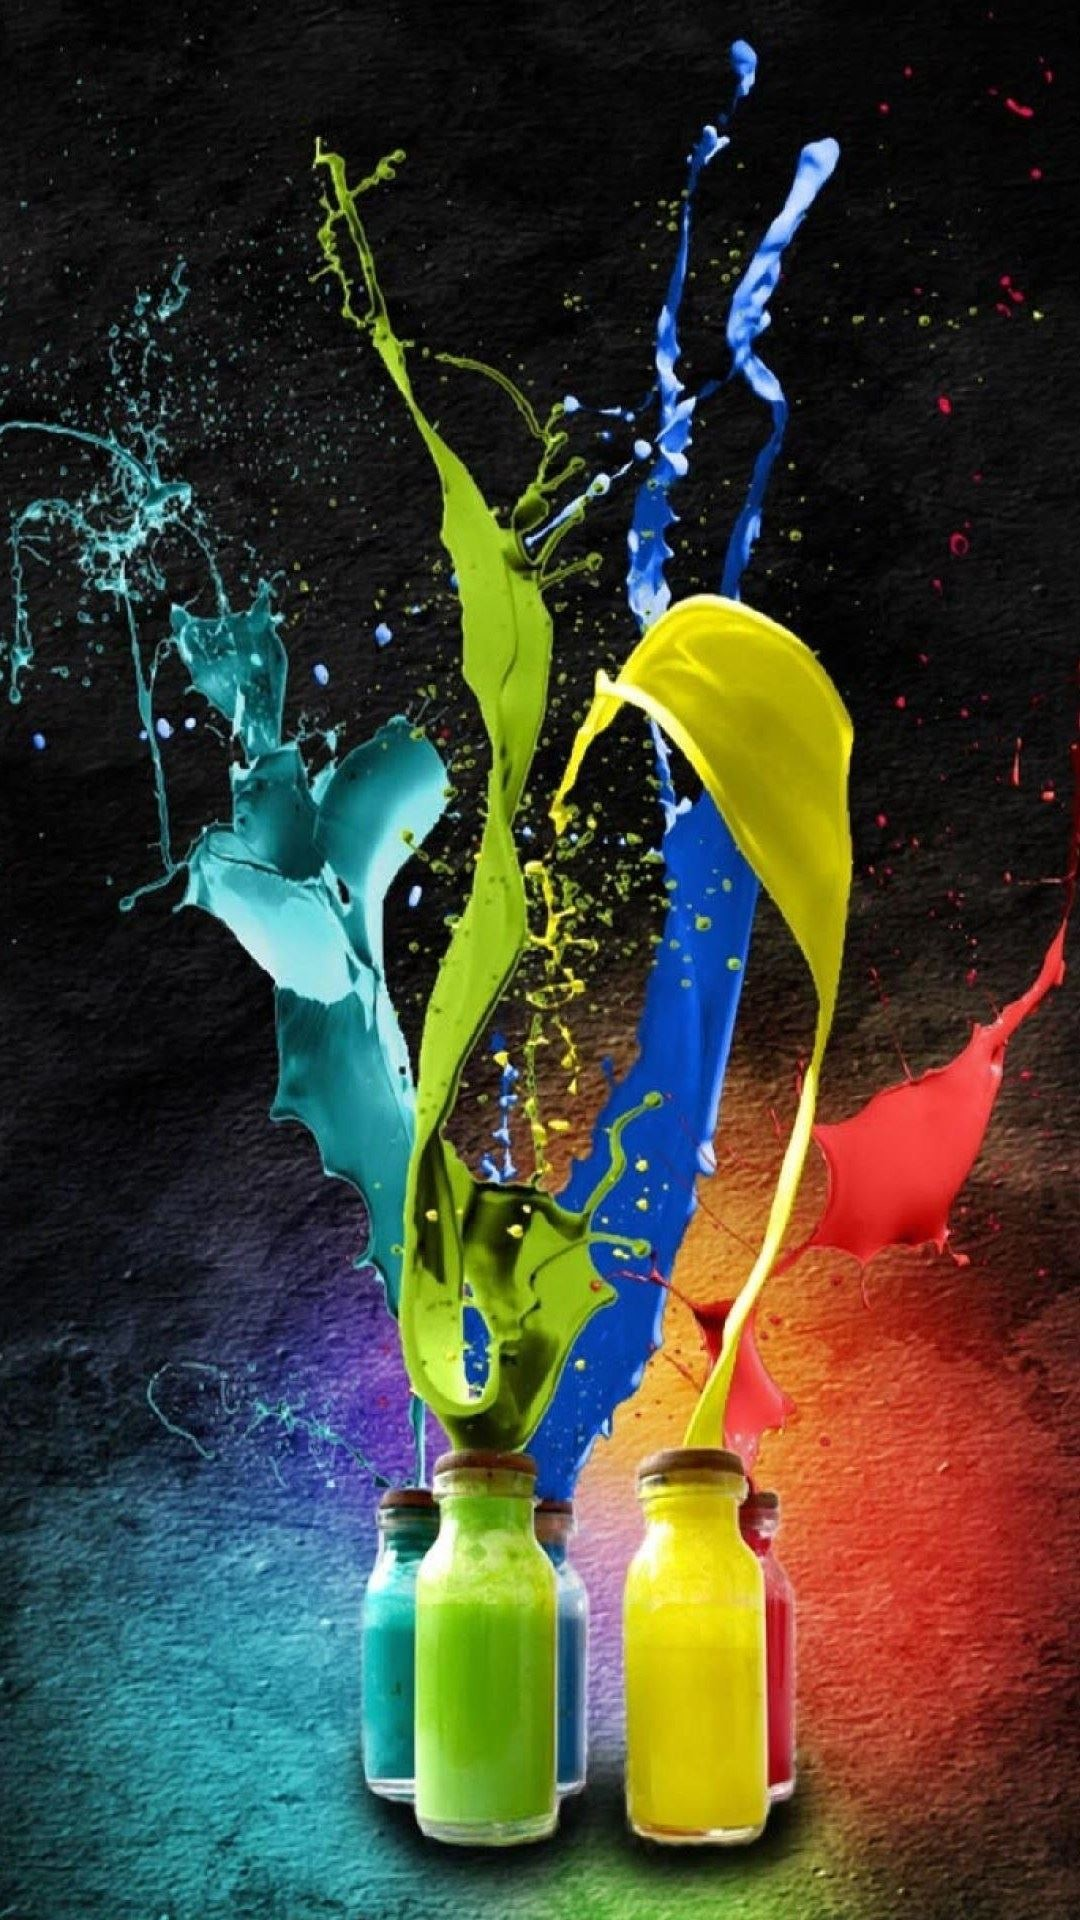 Download. Wallpaper iphone abstrak hd – 35 Awesome Abstract Wallpaper